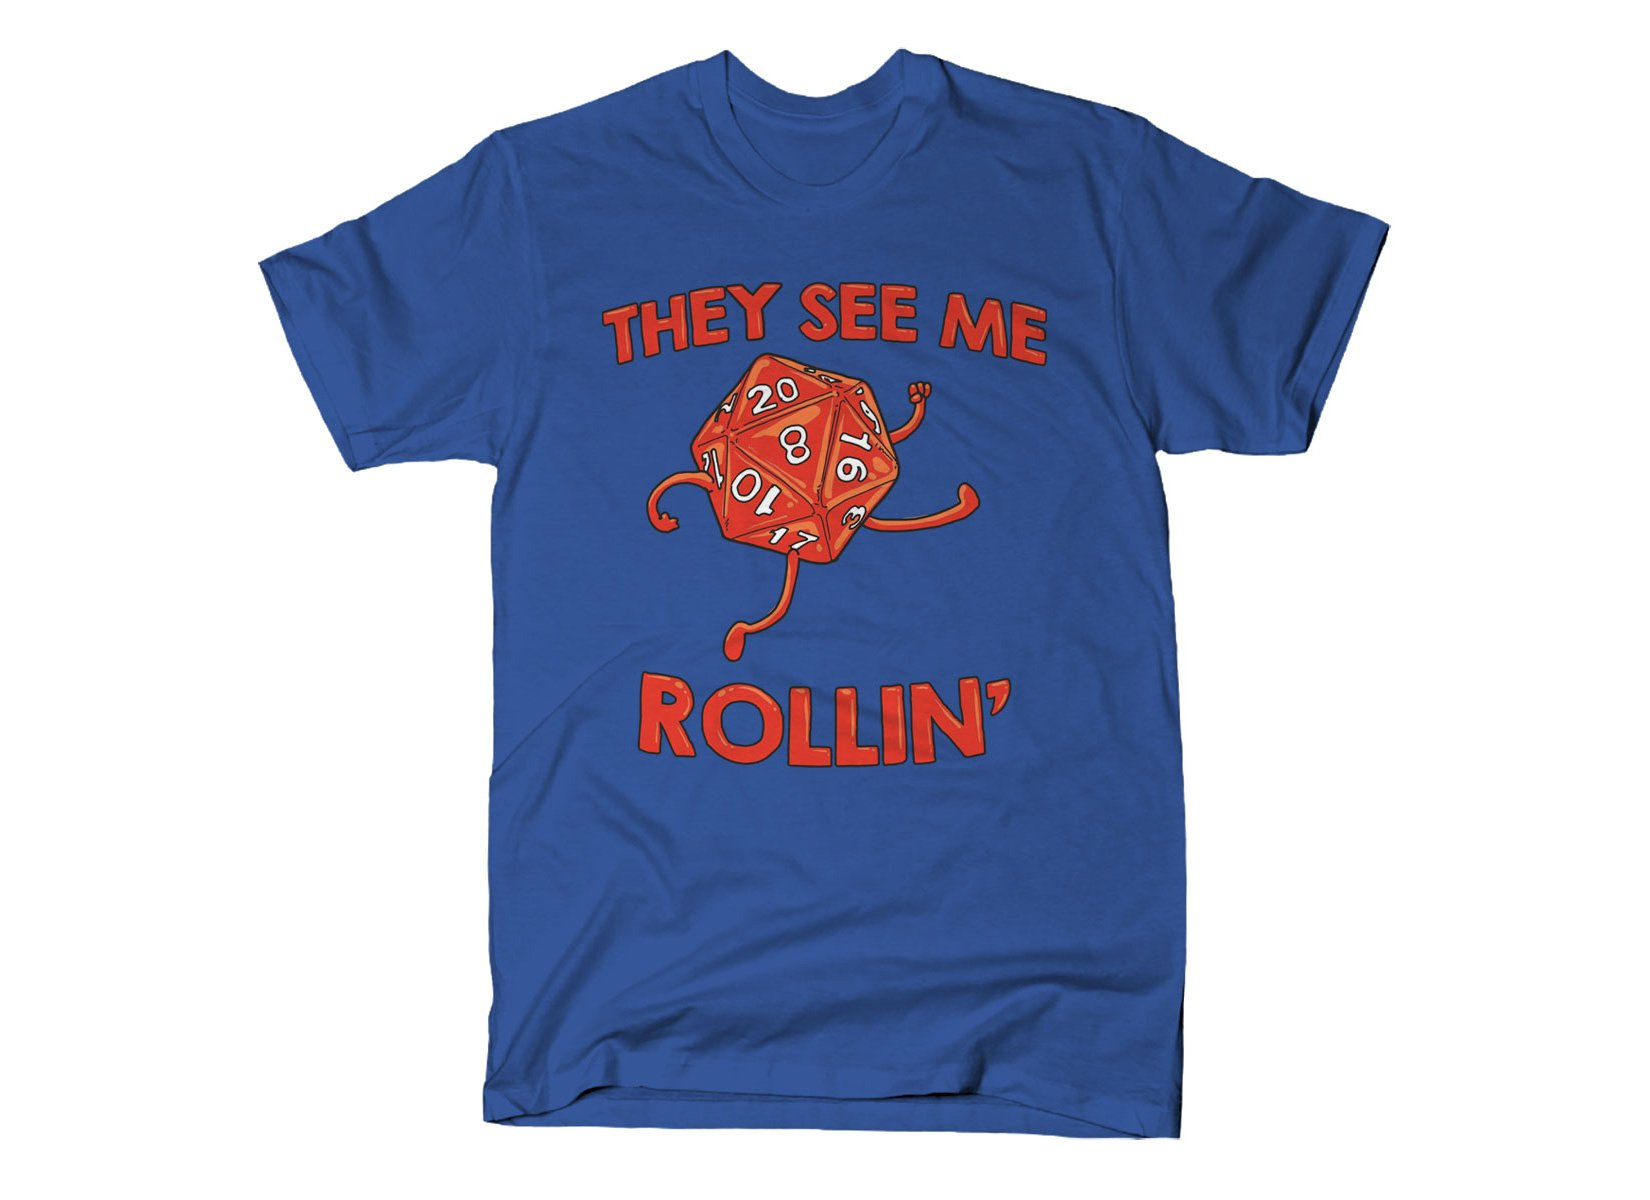 They See Me Rollin' on Mens T-Shirt